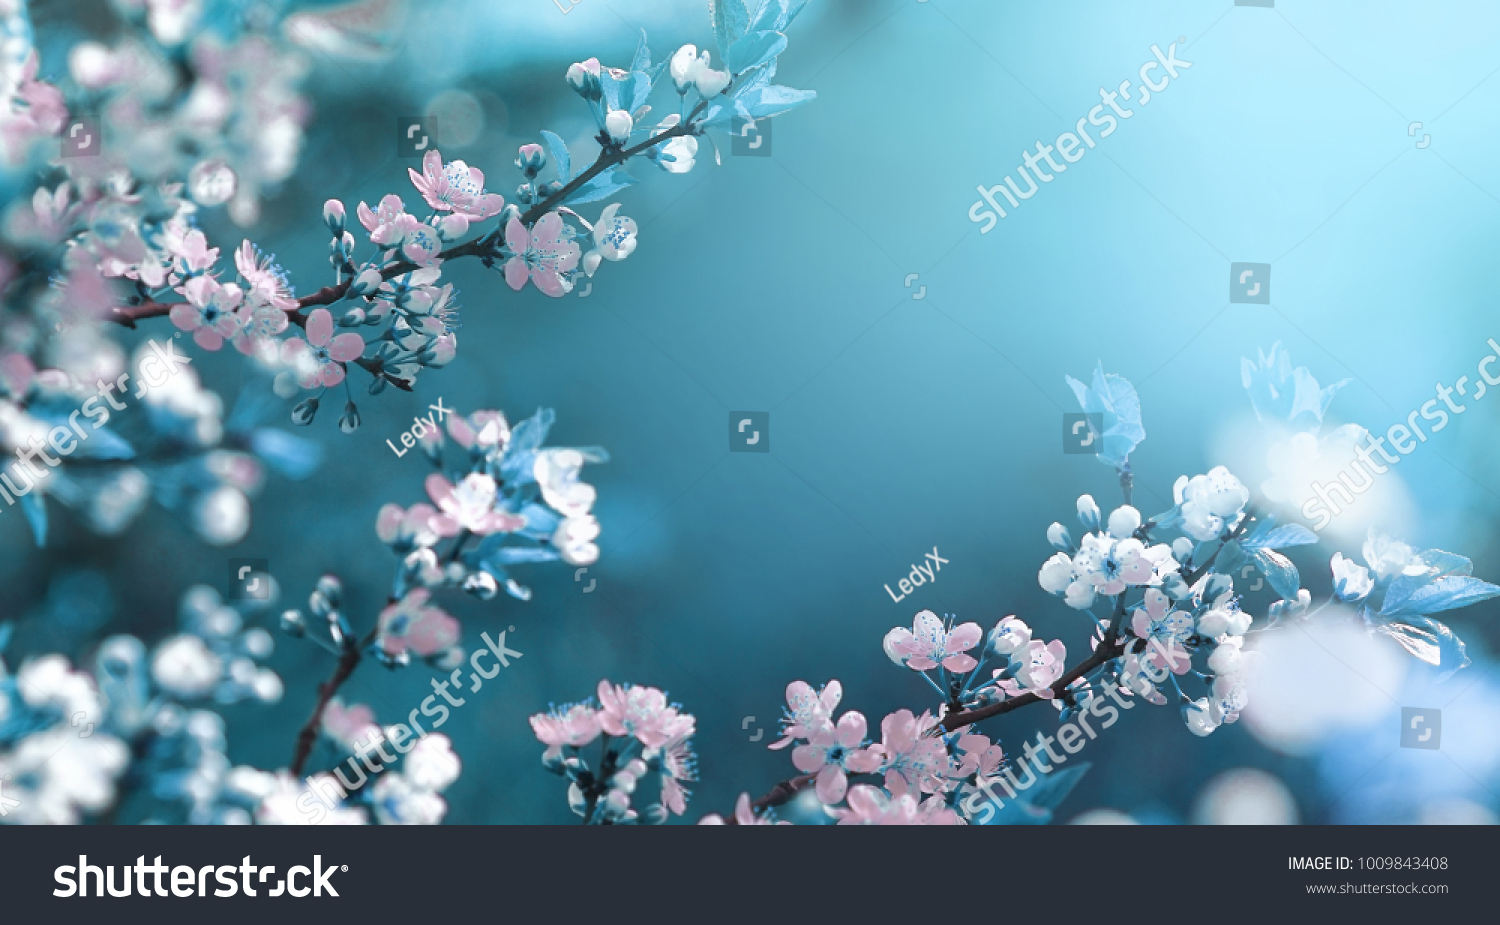 Beautiful floral spring abstract background of nature. Branches of blossoming apricot macro with soft focus on gentle light blue sky background. For easter and spring greeting cards with copy space #1009843408